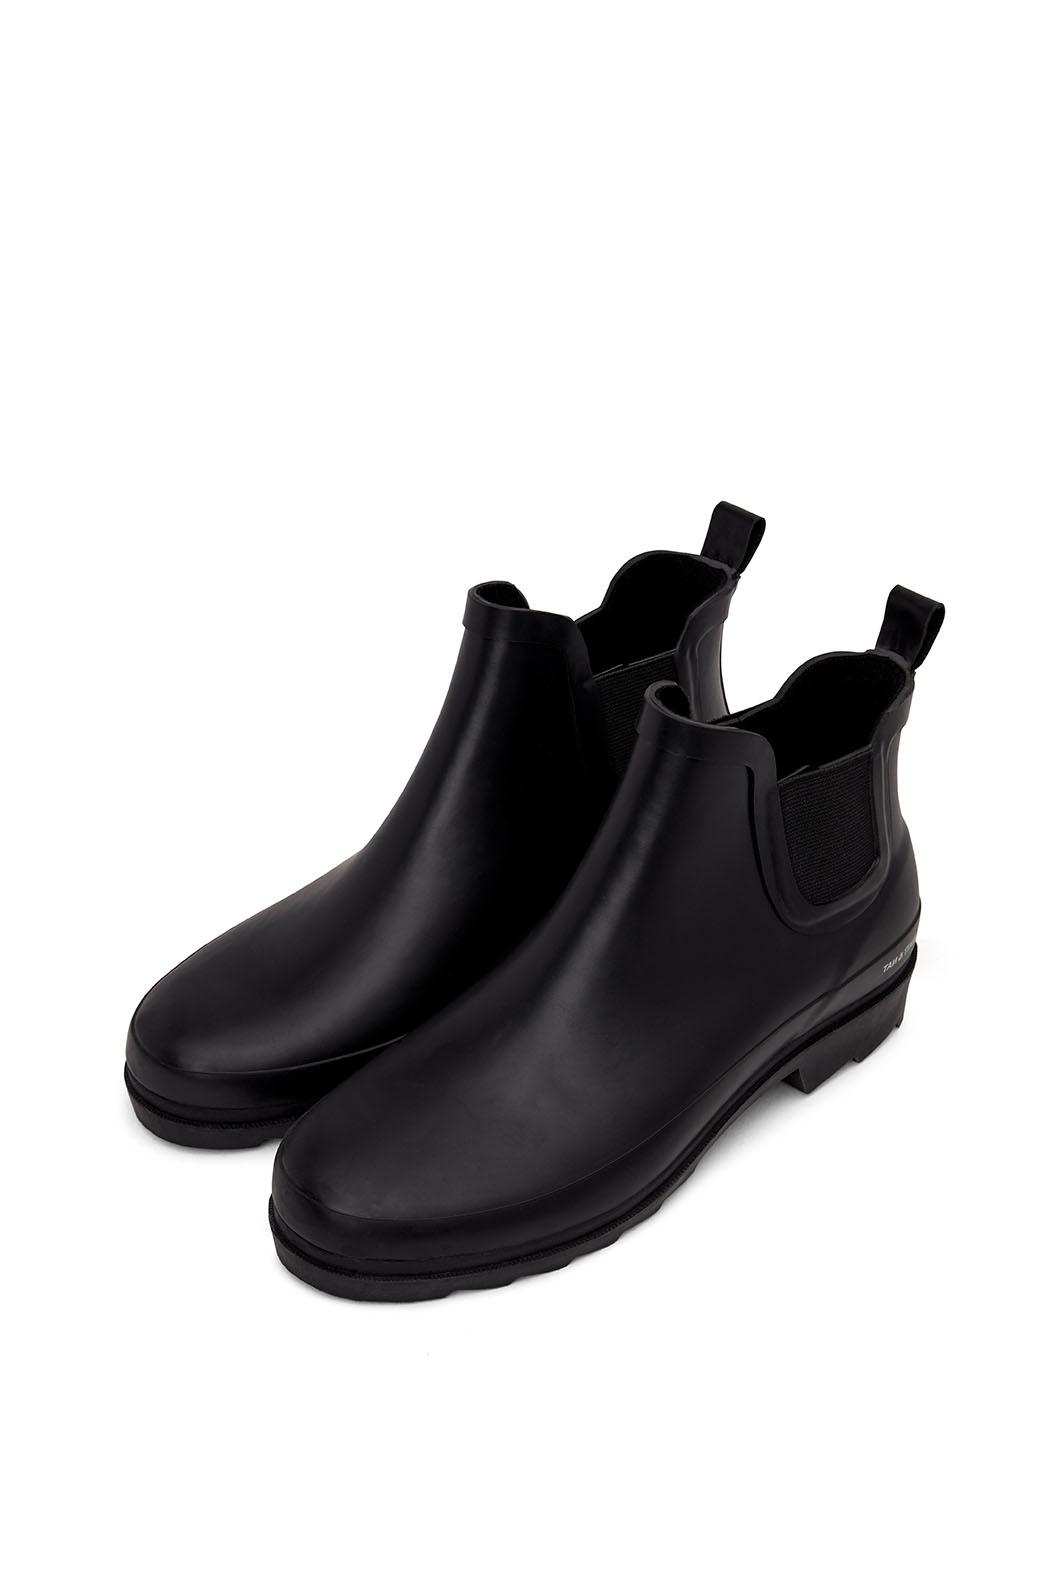 Matt & Nat Lane Rain Boots - Front Full Image